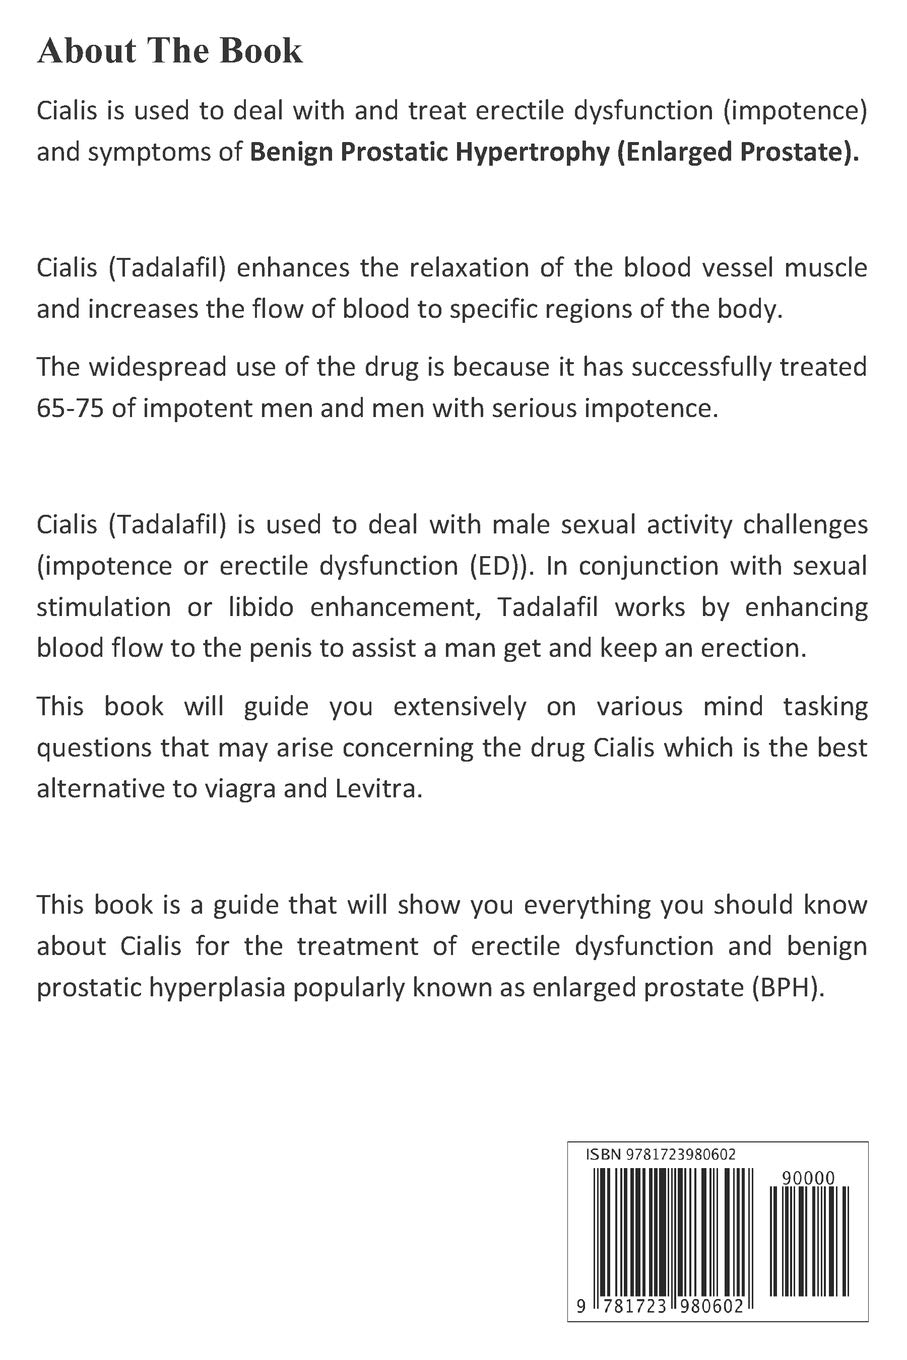 Cialis: The Alternative to Viagra for Treating Sexual Health Impotence (Erectile Dysfunction) in Men & Benign Prostatic Hyperplasia Enlarged Prostate (BHP).